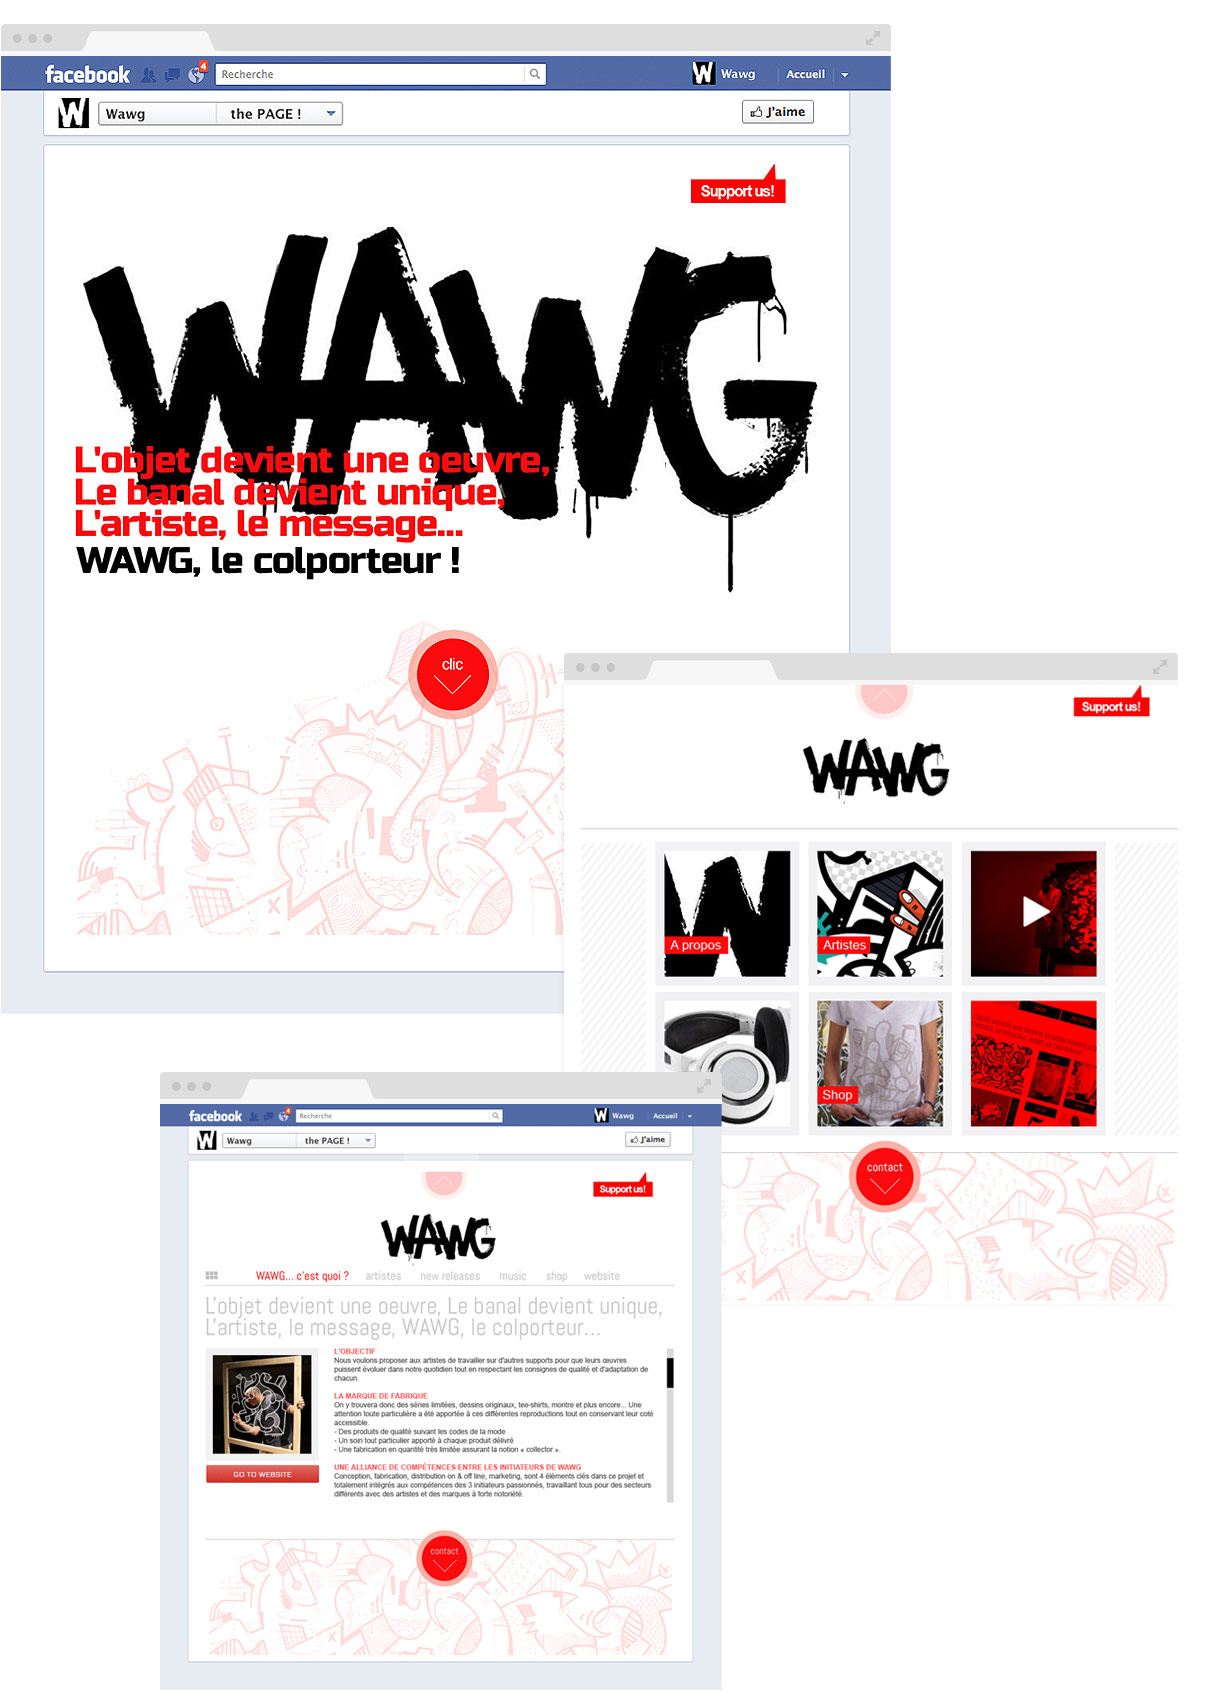 Wawg - Facebook - Direction artistique - Web design - Toulouse - © Olivier Varma